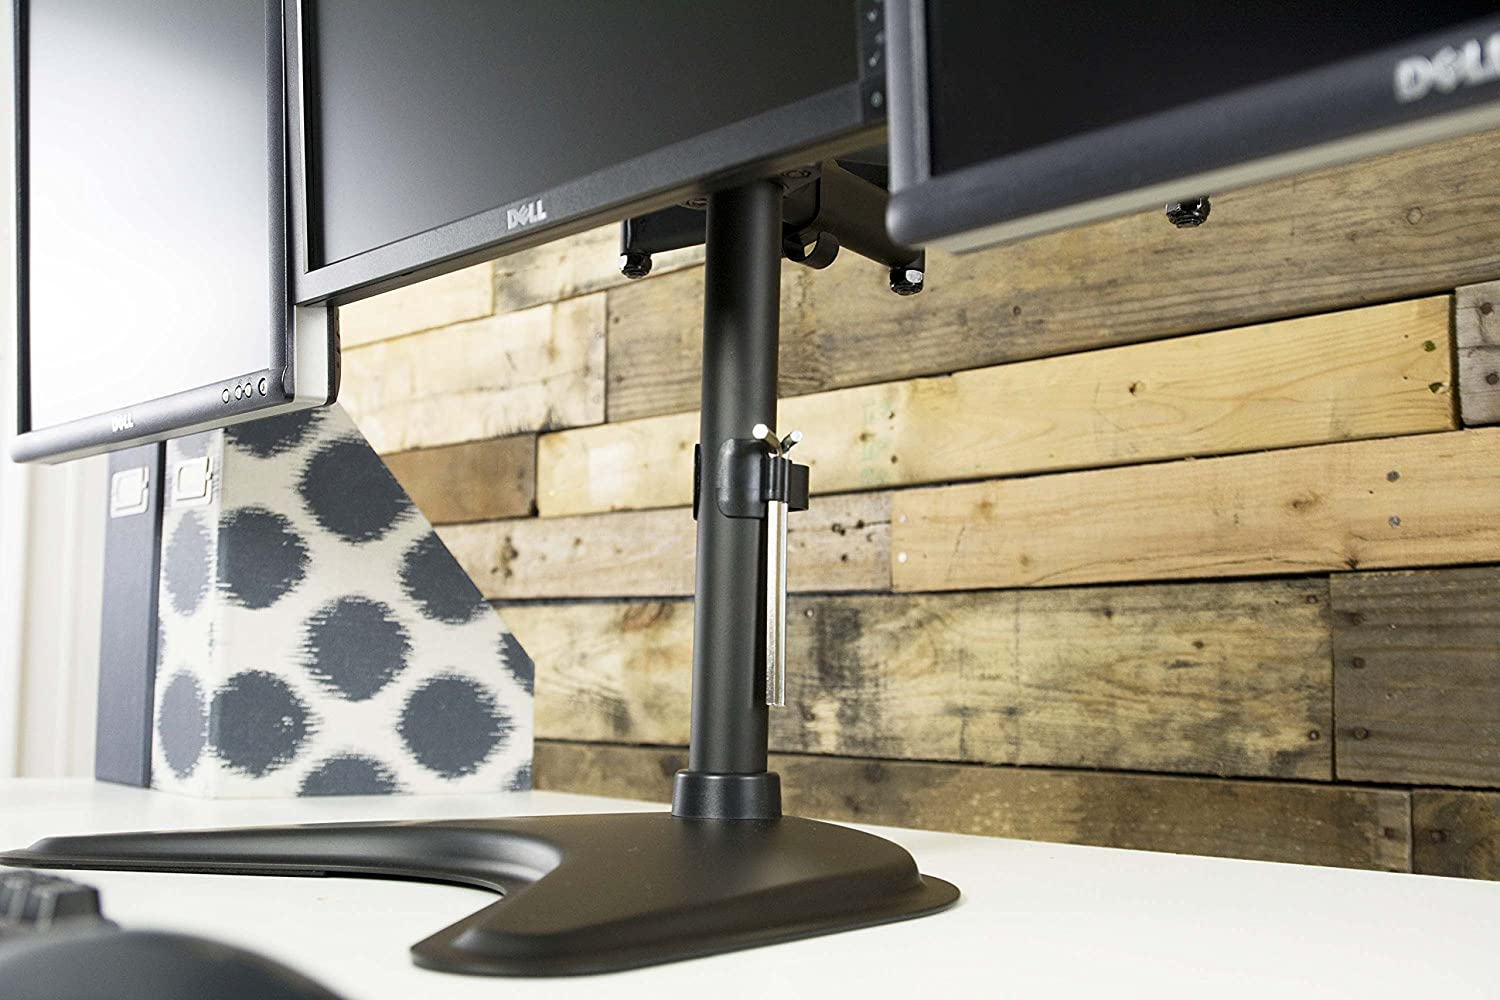 STAND-V003P VIVO Triple Monitor Mount Fully Adjustable Desk Free Stand for 3 LCD Screens Upto 24